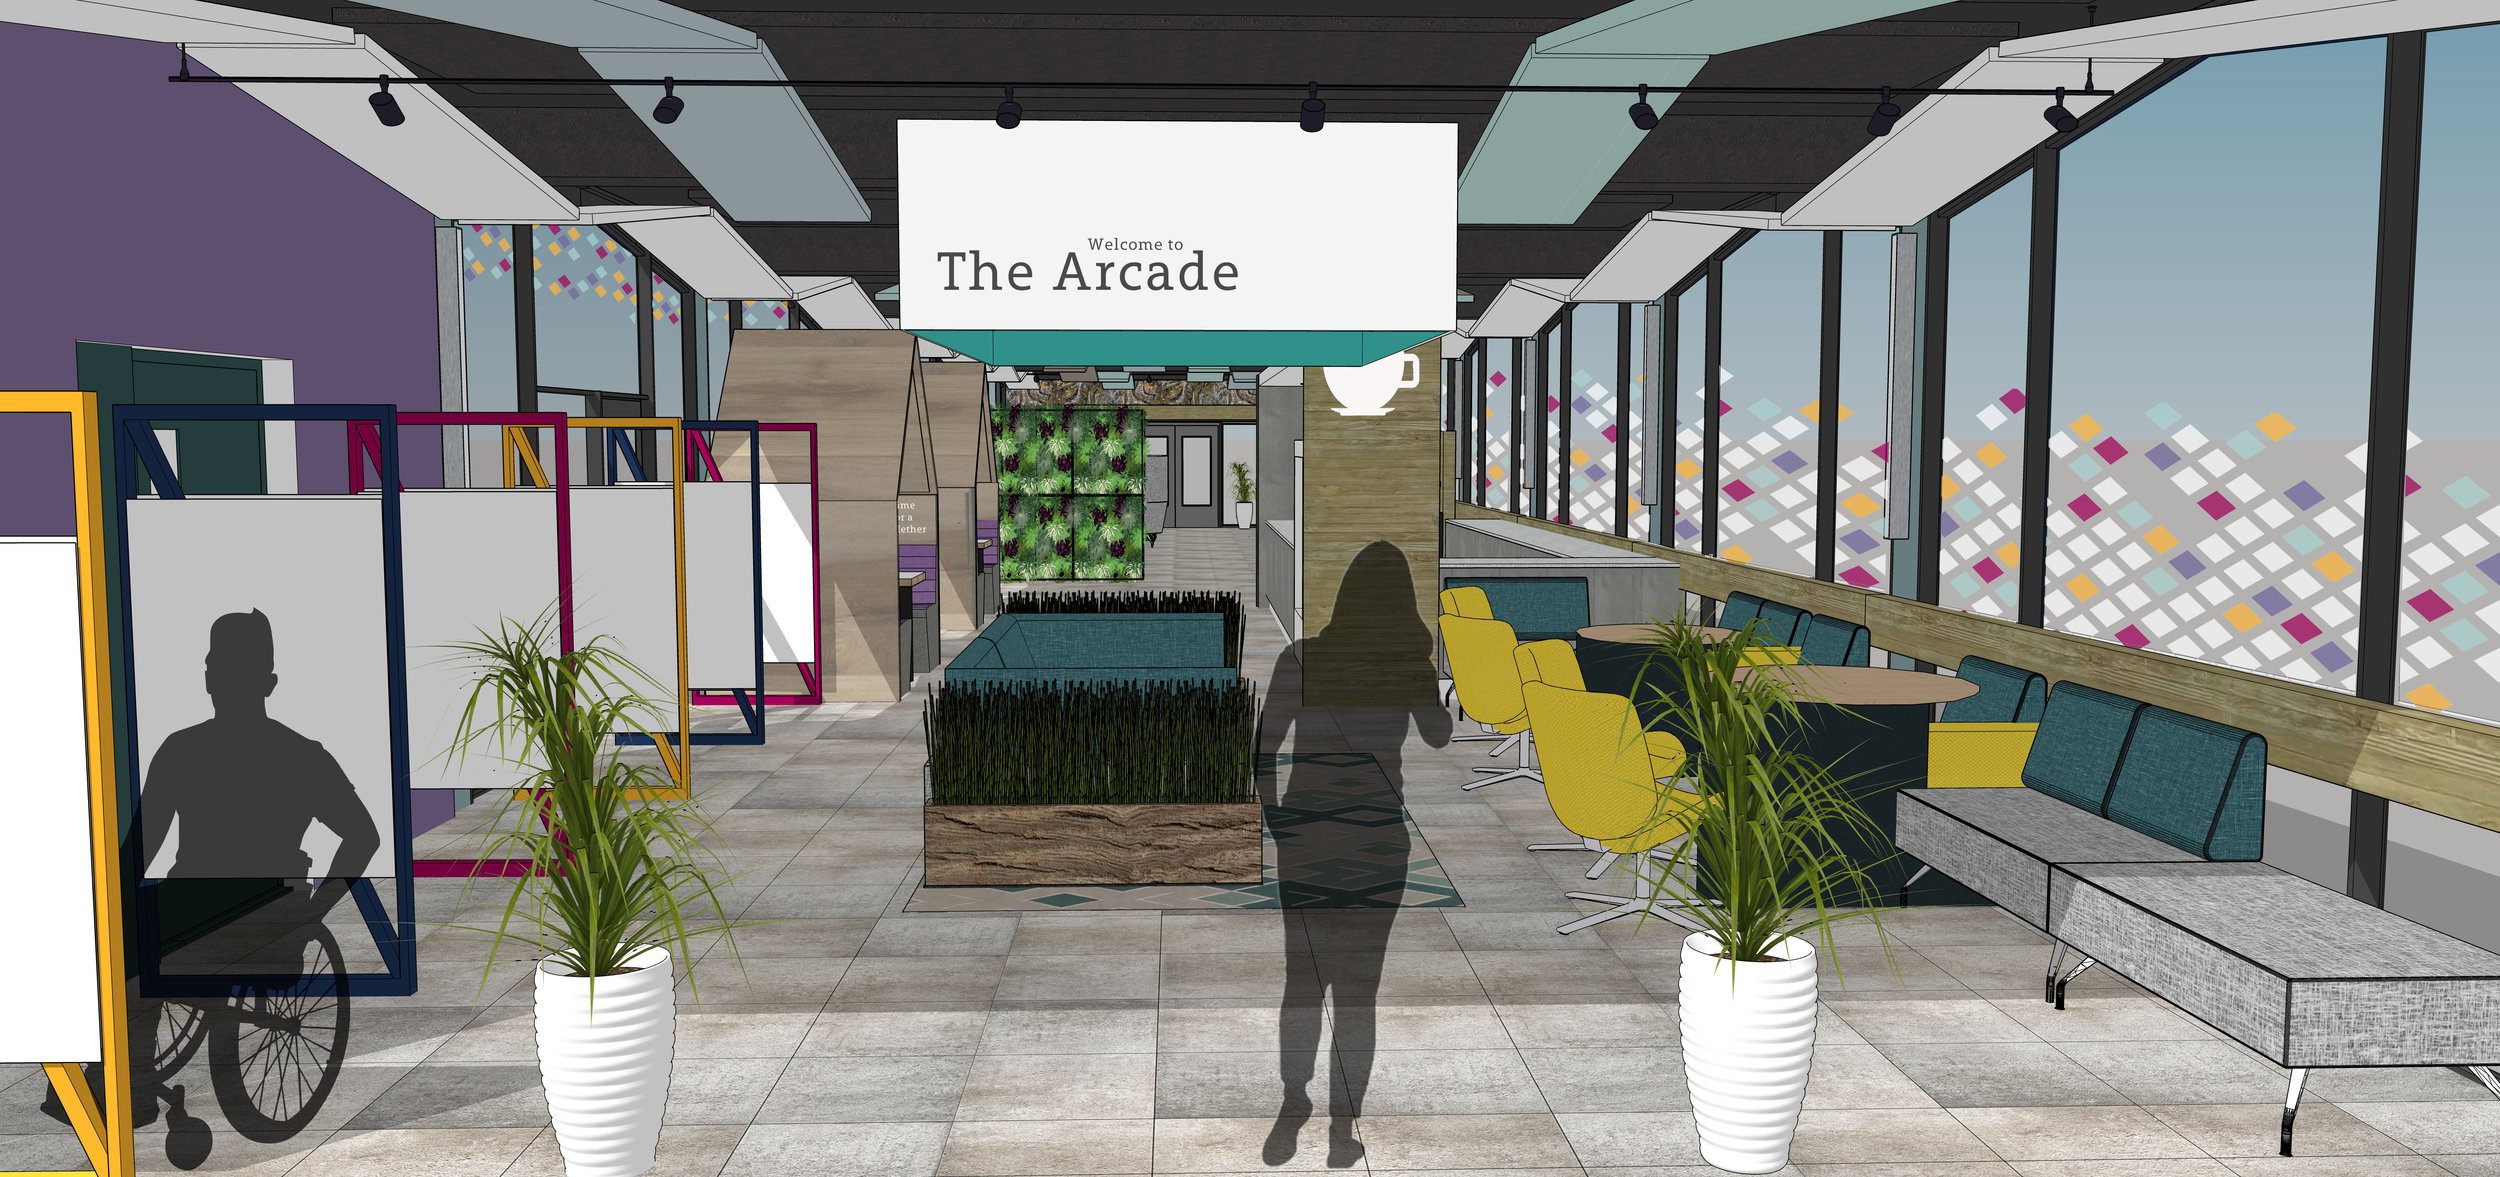 Proposed entrance to the Arcade